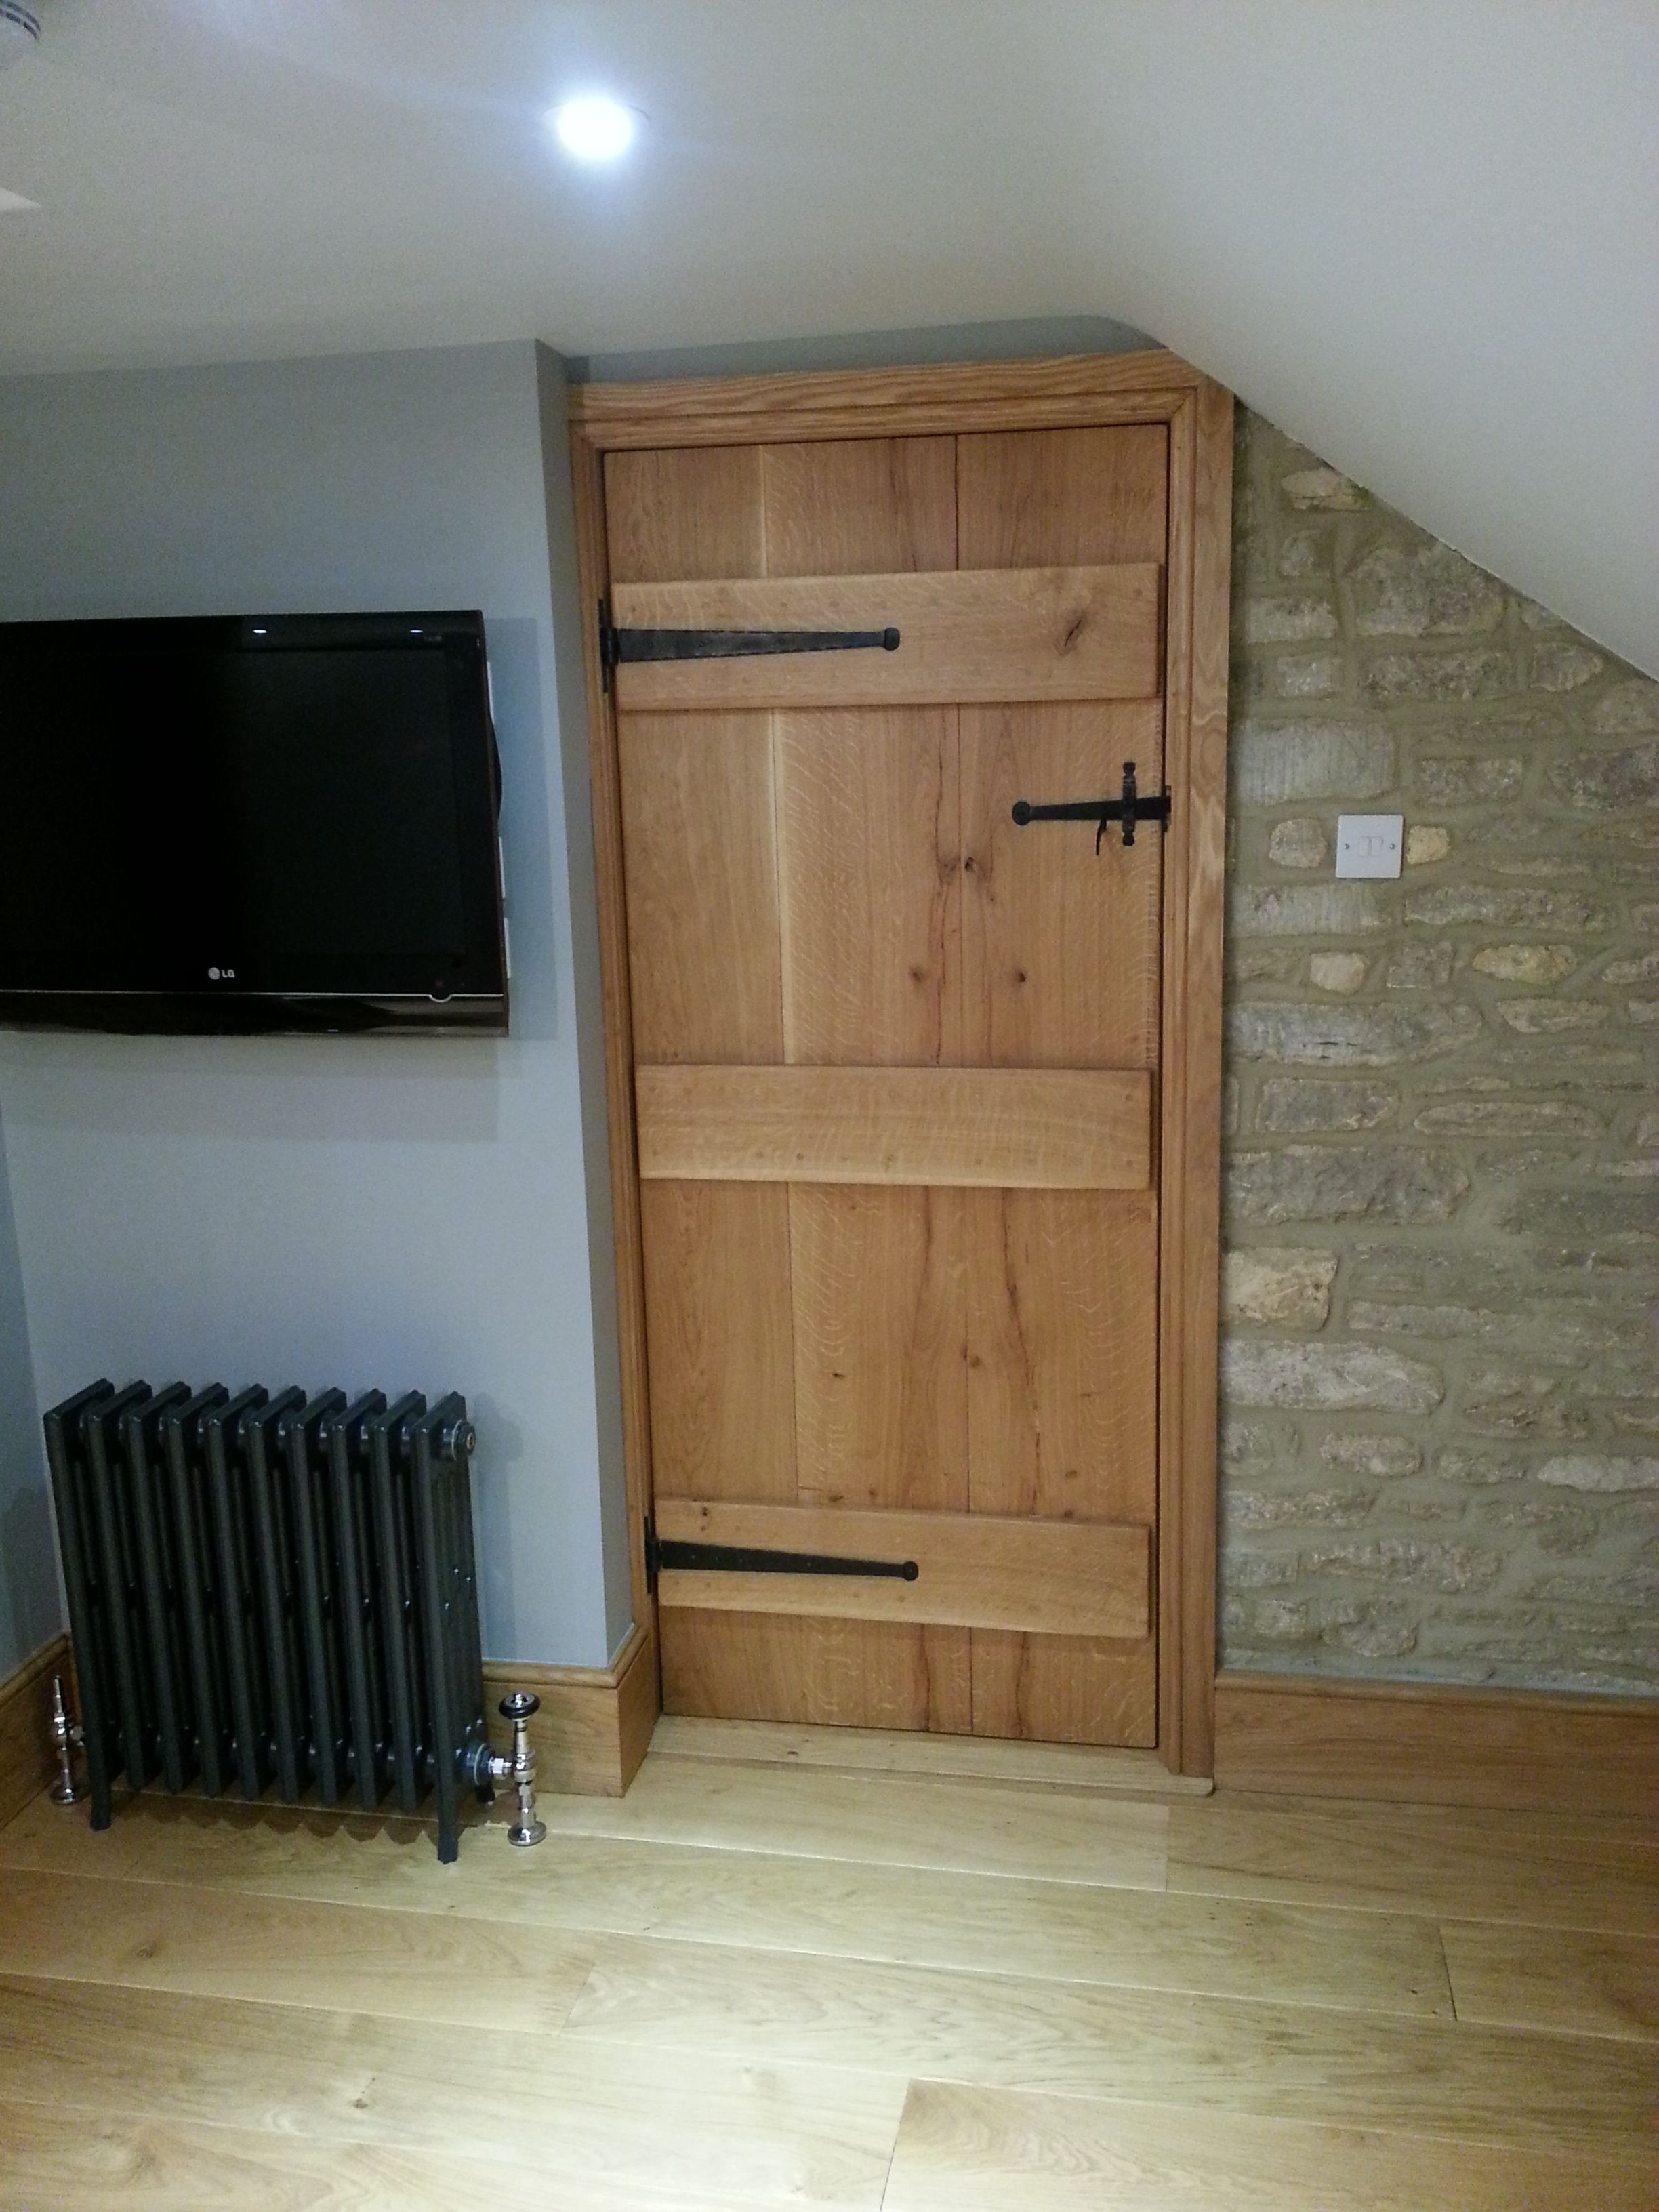 Solid Oak Barn Door, Cottage Ledged Door, wooden cottage